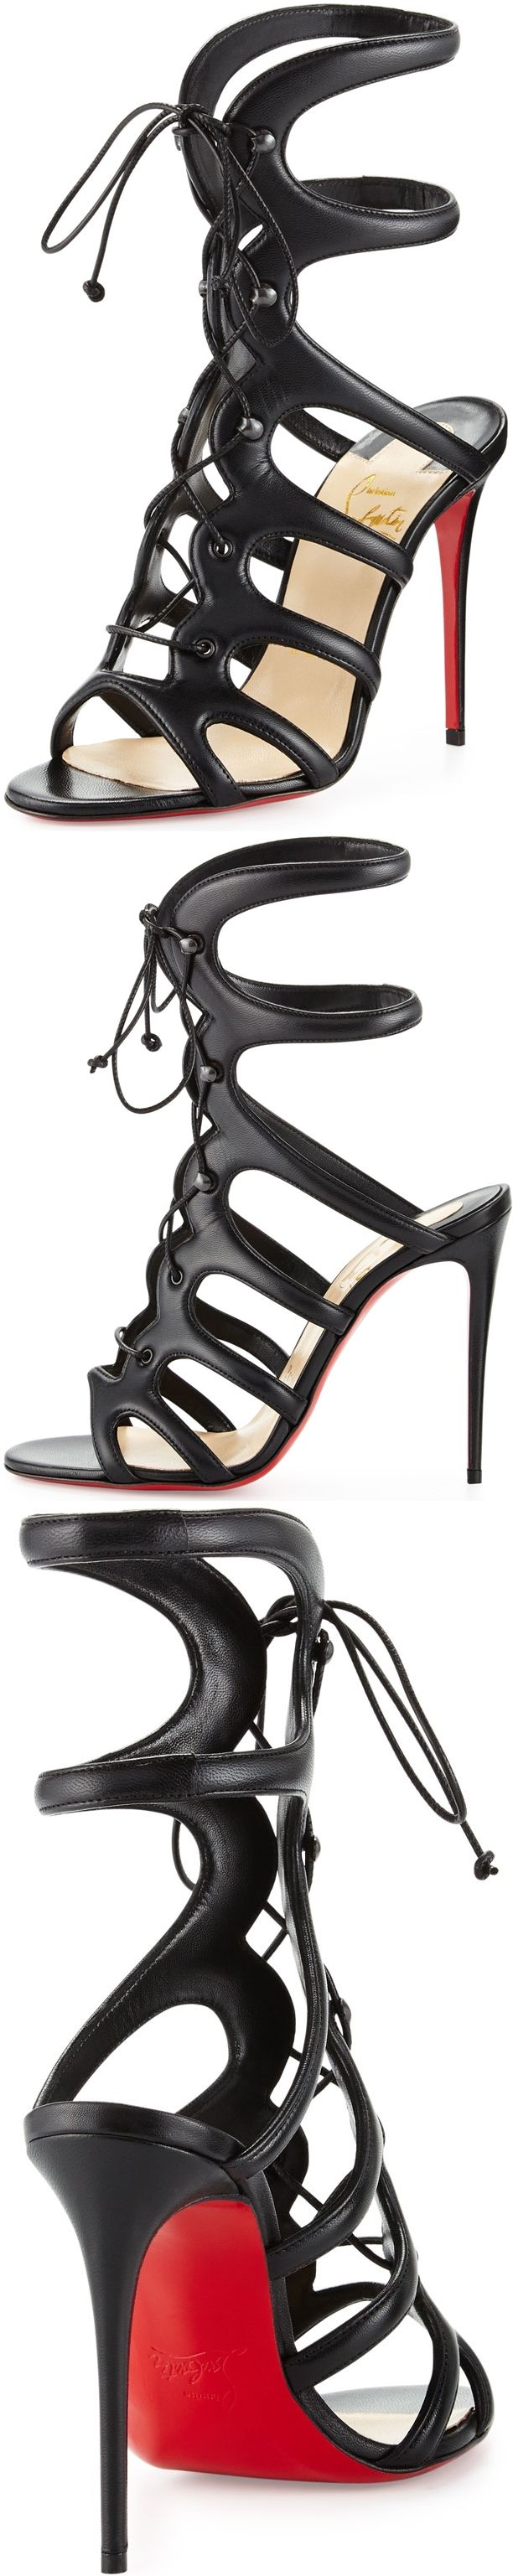 Christian Louboutin's standout 'Amazoula' sandals are crafted from smooth and supple black leather. Made in Italy, this pair has a flattering cage-like silhouette and an adjustable lace-up front.